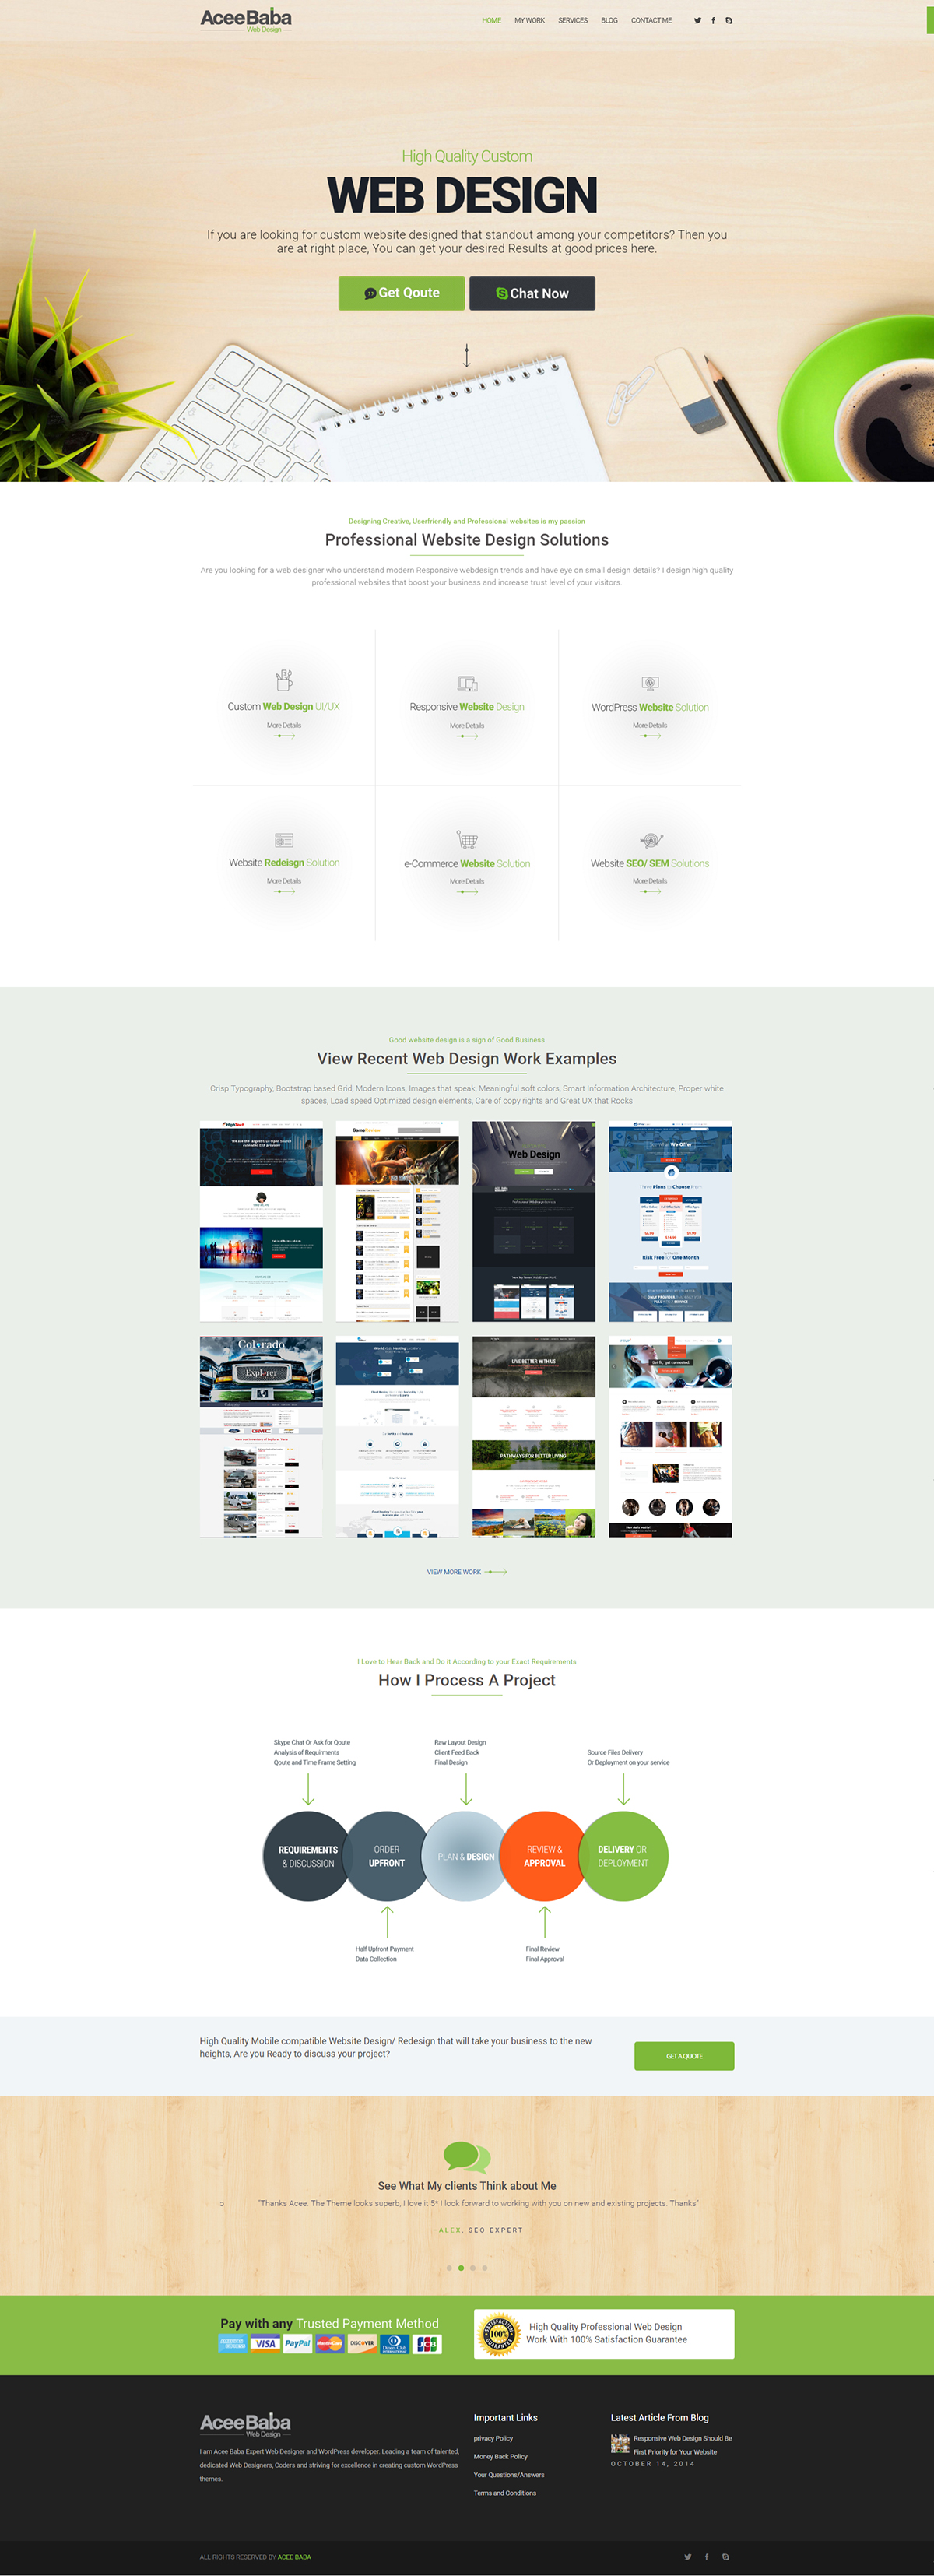 Web Design Agency Home Page on Behance